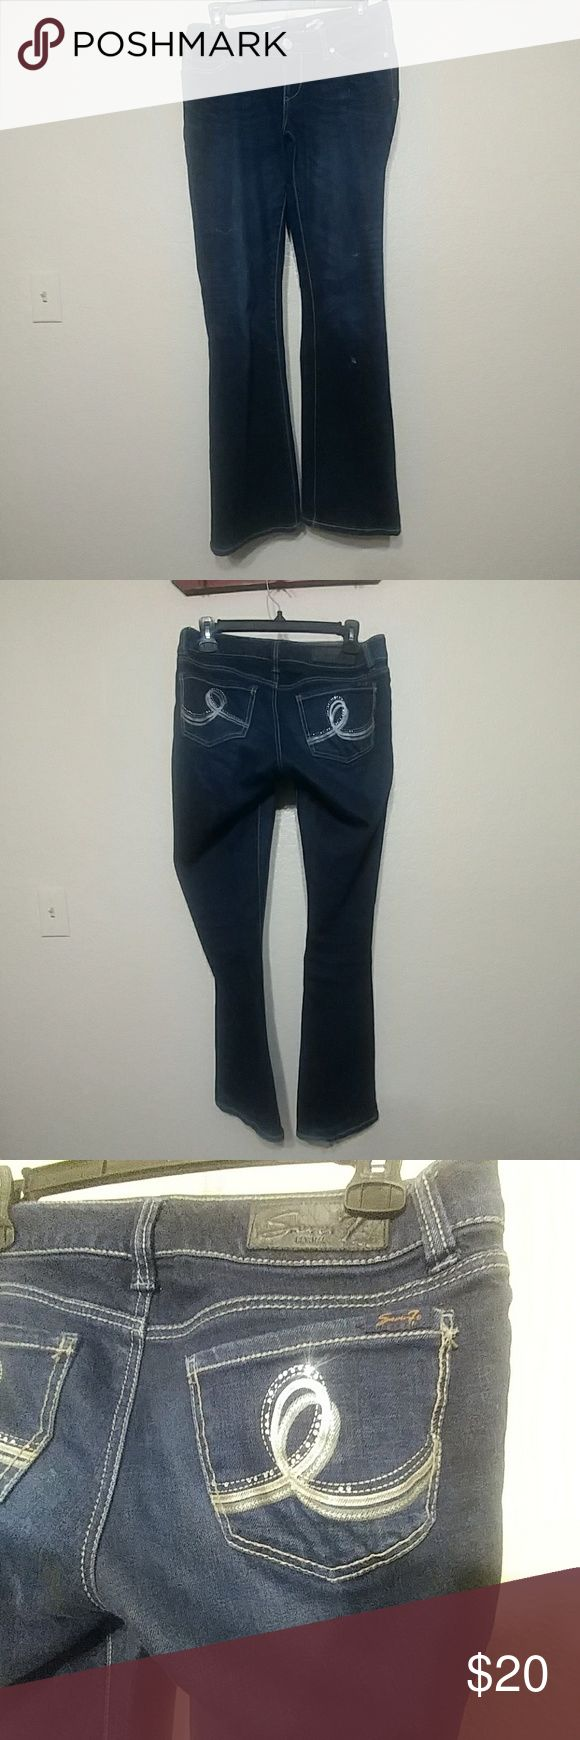 Seven jeans size 27 Seven jeans size 27. Perfect but some wear on heels. Dark denim Seven7 Jeans Boot Cut